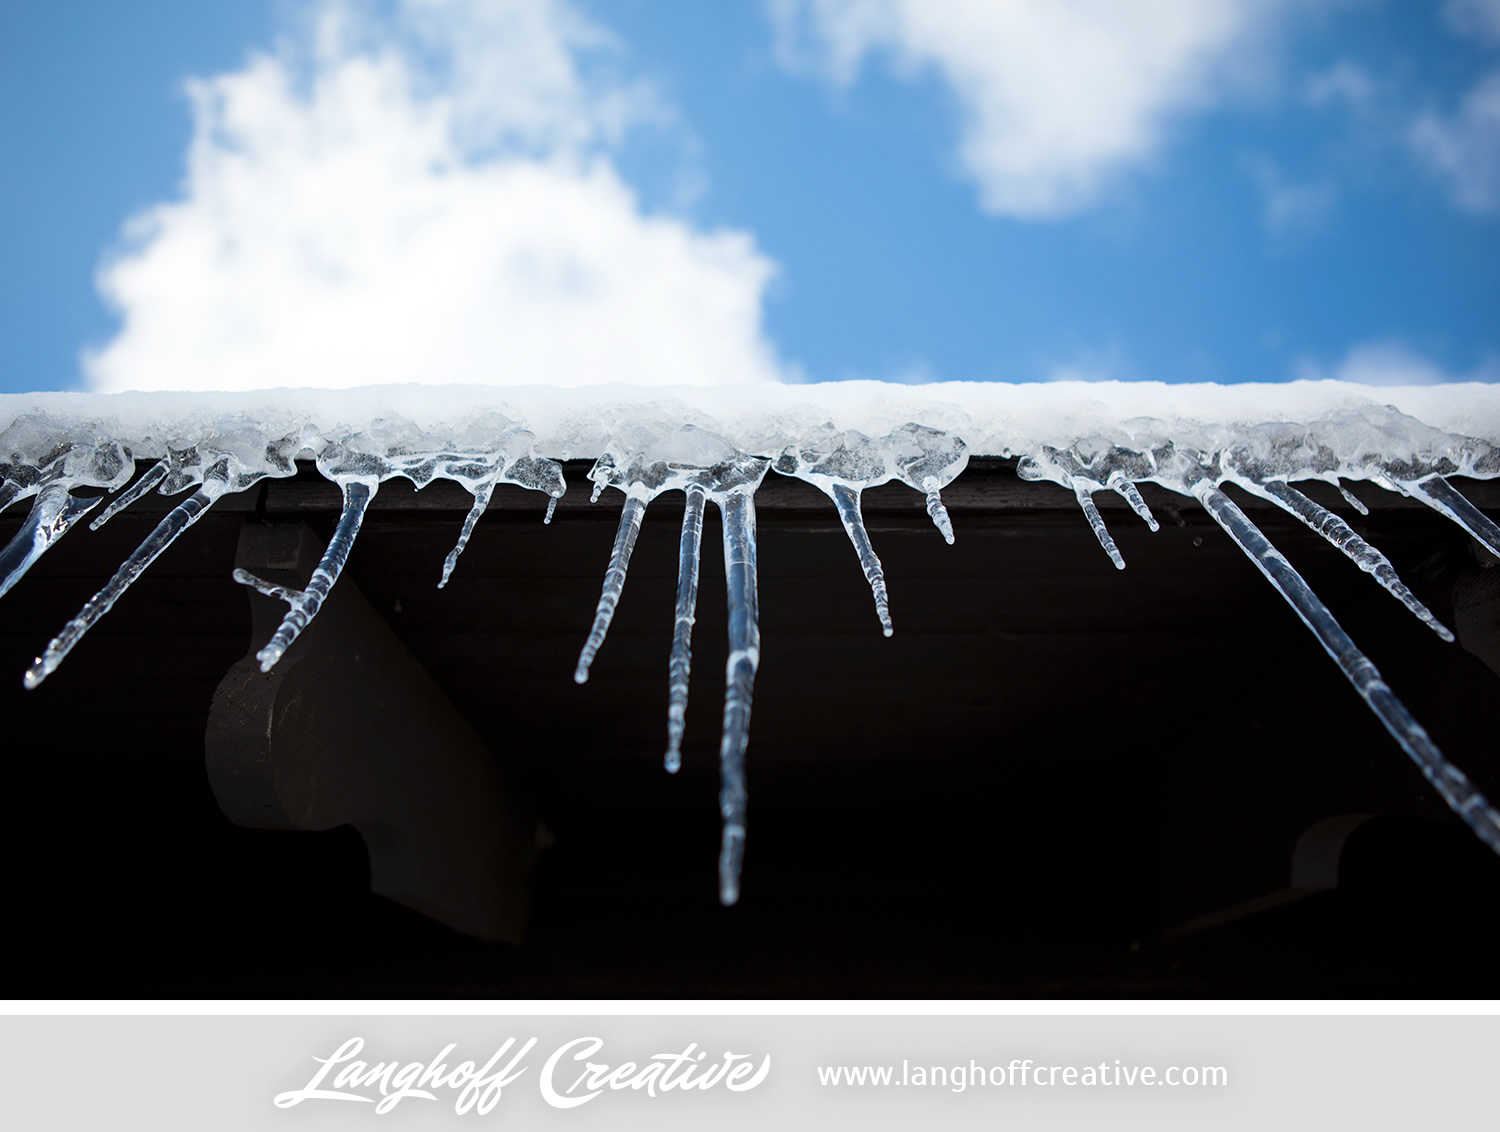 LanghoffCreative-20130308-winter1-image.jpg